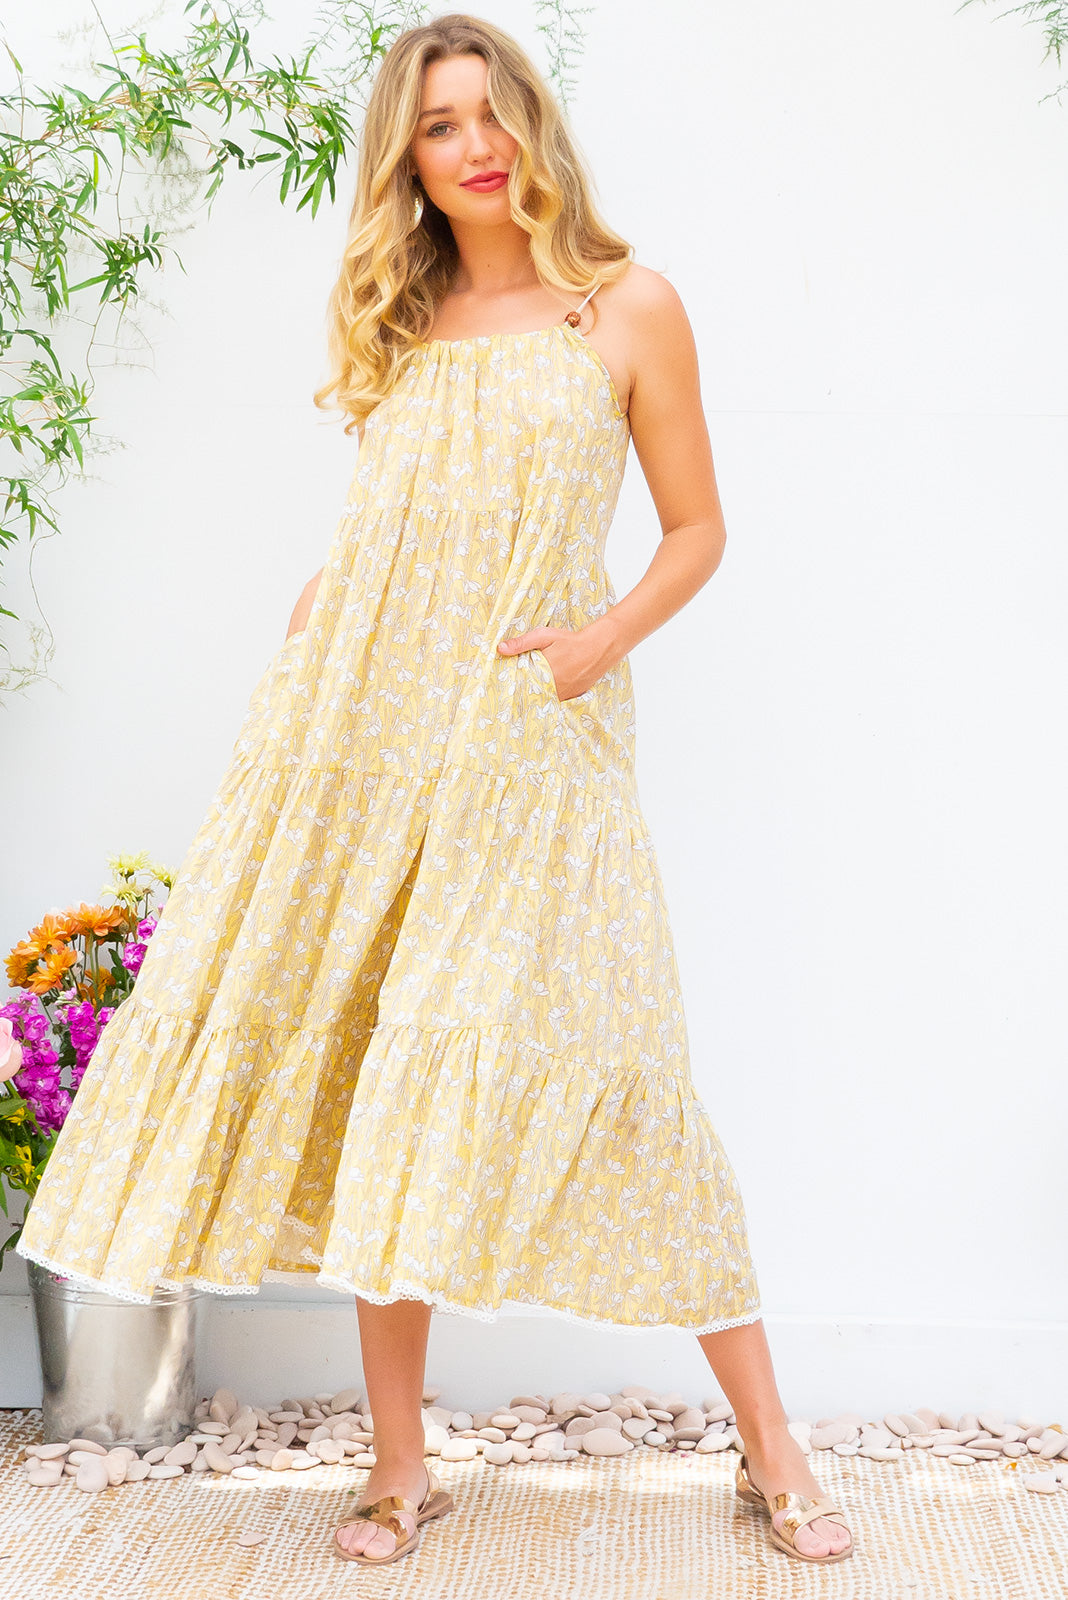 Lulu Loves Snowdrop Sunshine Maxi length cotton rayon blend tiered dress with a adjustable neckline, side pockets in beautiful light yellow and white snowdrop floral print on 100% cotton, comes with a self coloured belts and features side pockets